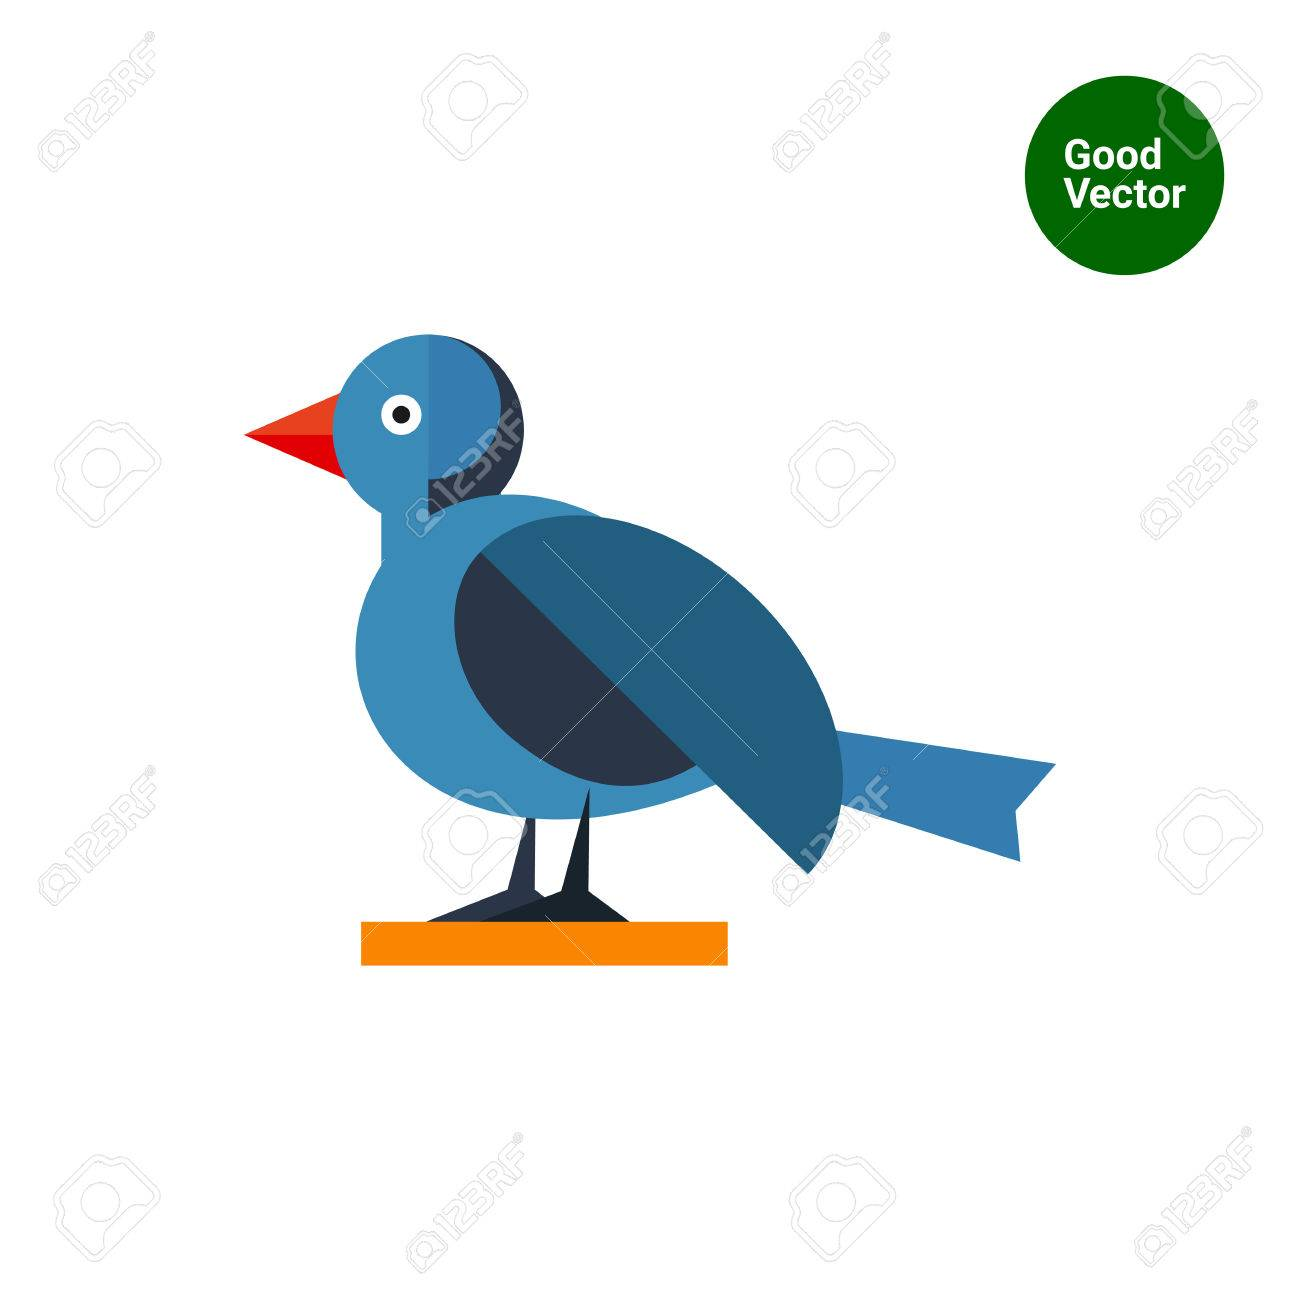 Multicolored vector icon of blue bird, side view - 52061482